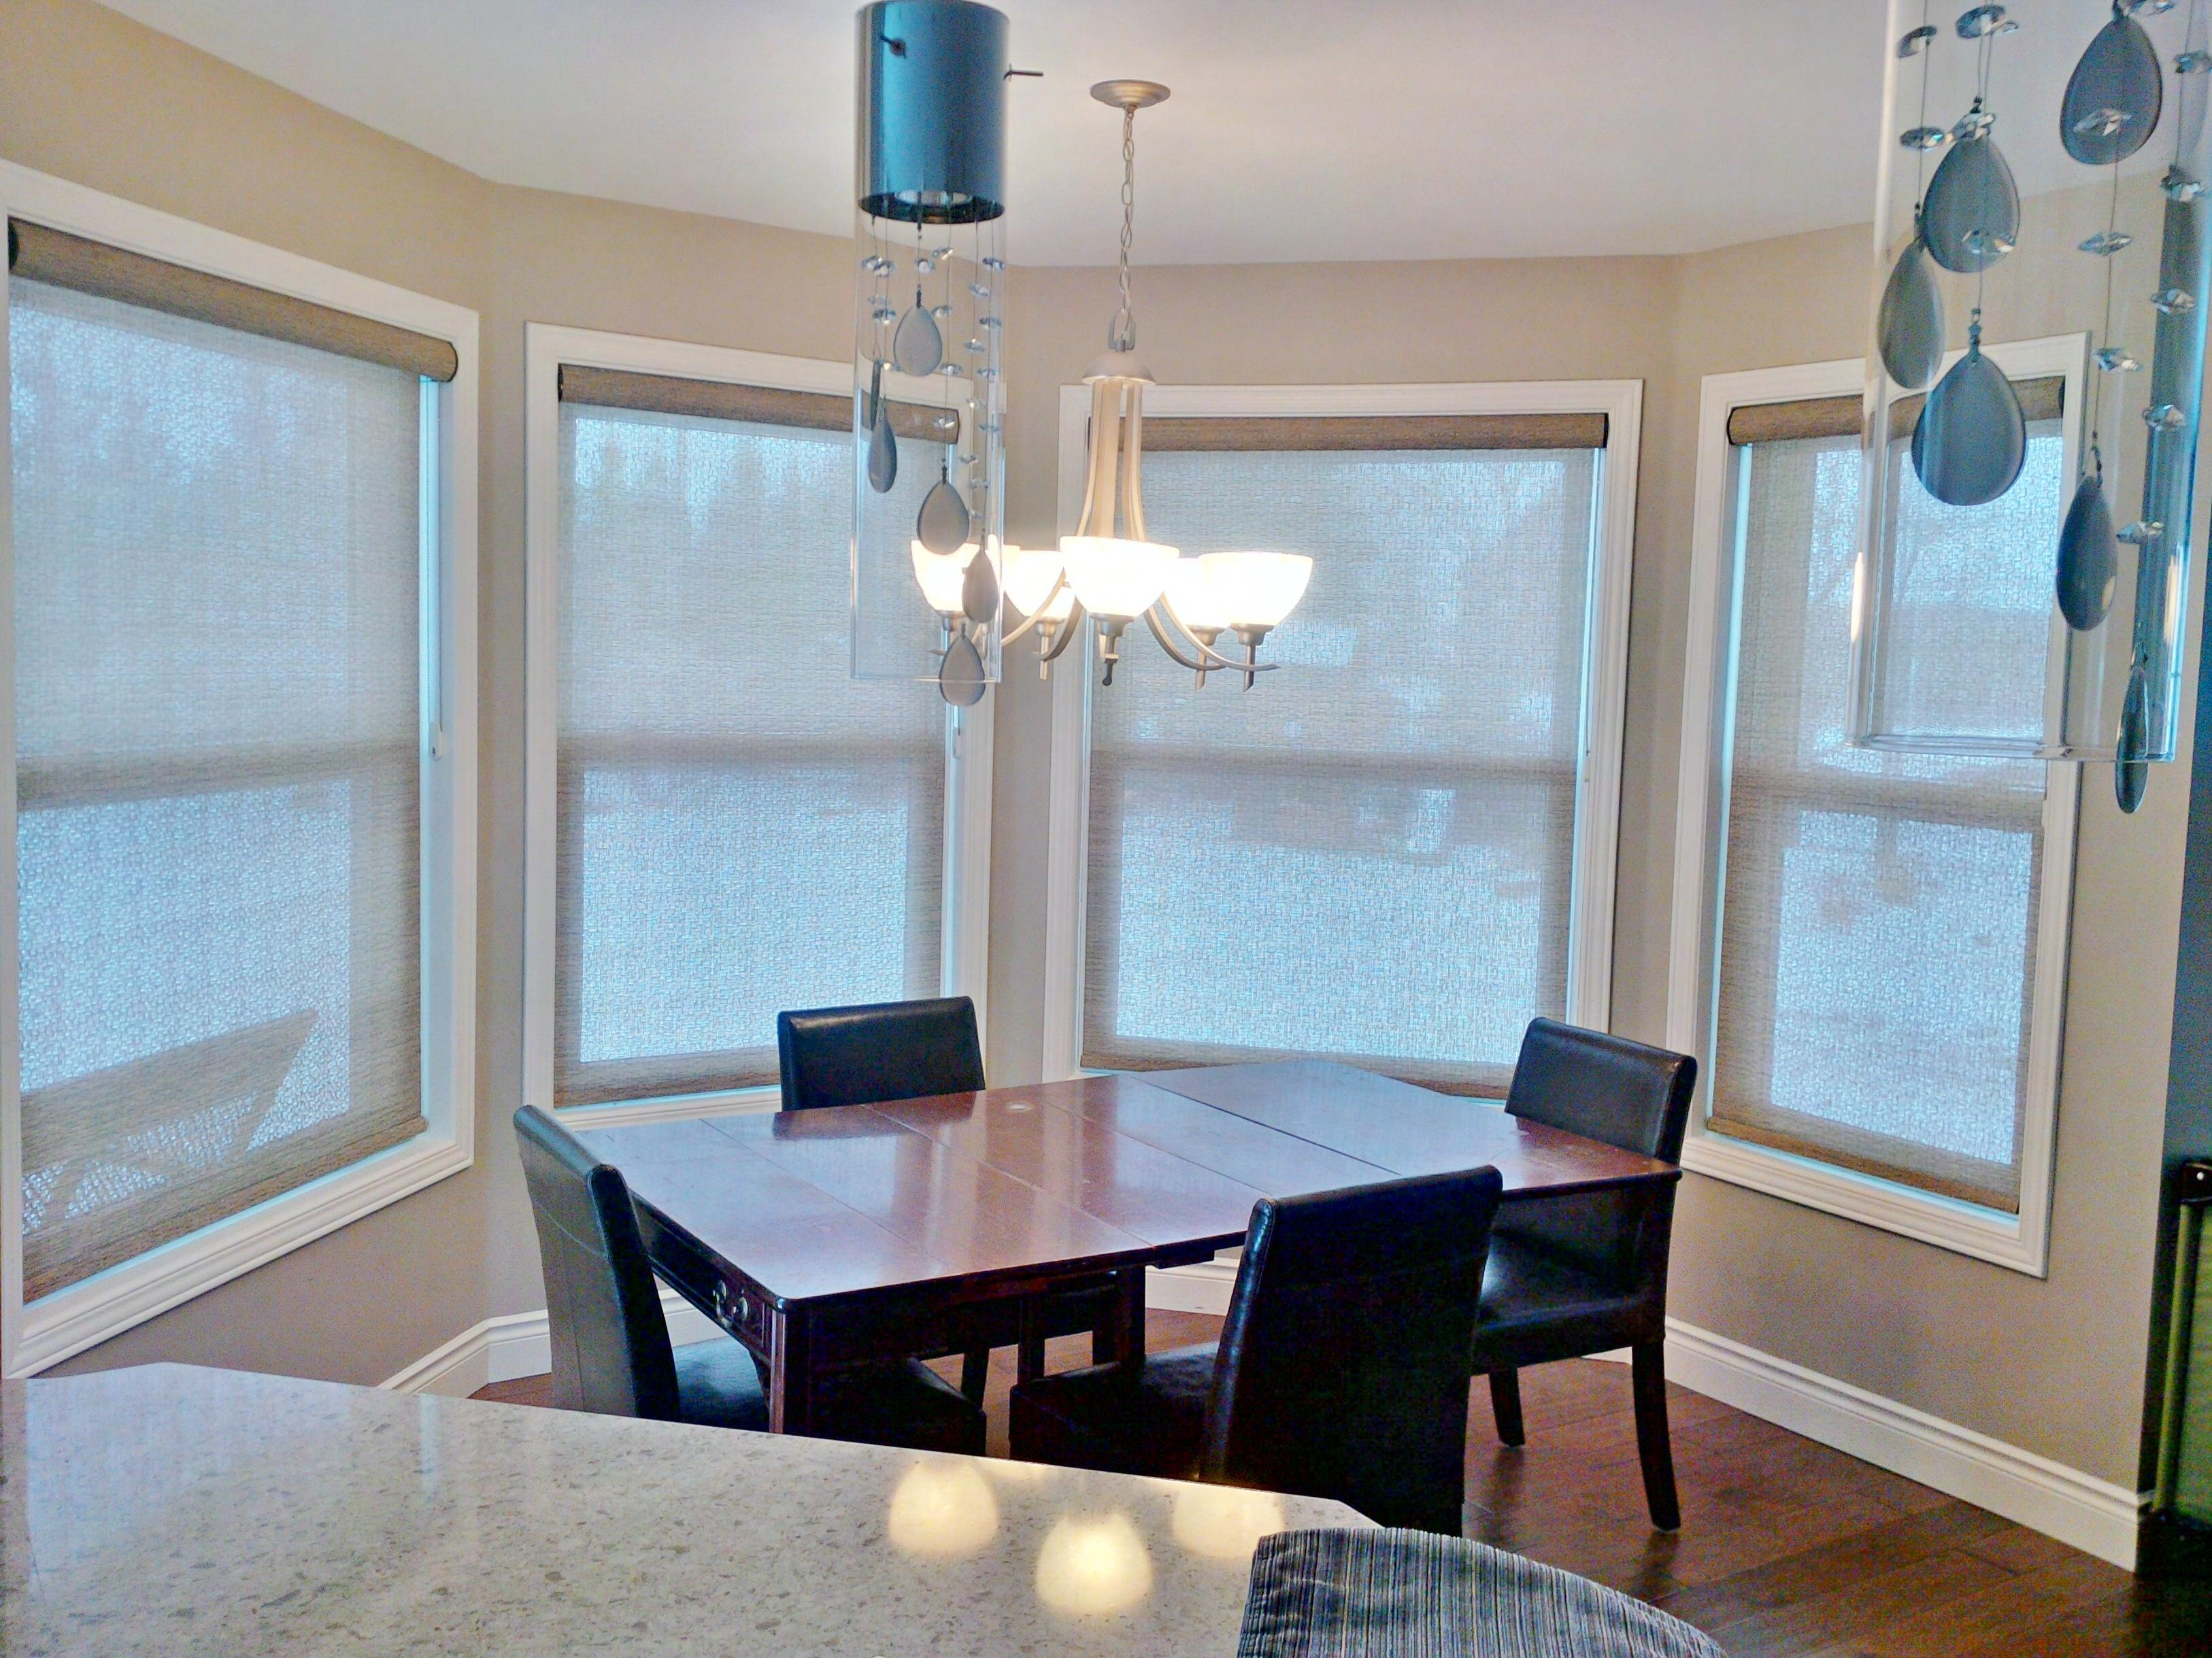 Budget Blinds à Waterloo: If you are sitting at your kitchen or dining room table trying to have a family meal with your sunglasses on, it might be time to address the window coverings!  This customer wanted to be able to control the sun in their breakfast nook, without having it feel too closed in. By installing solar shades we were able to block most of the direct sunlight while maintaining a degree of outward view to ensure the open feel they desired.